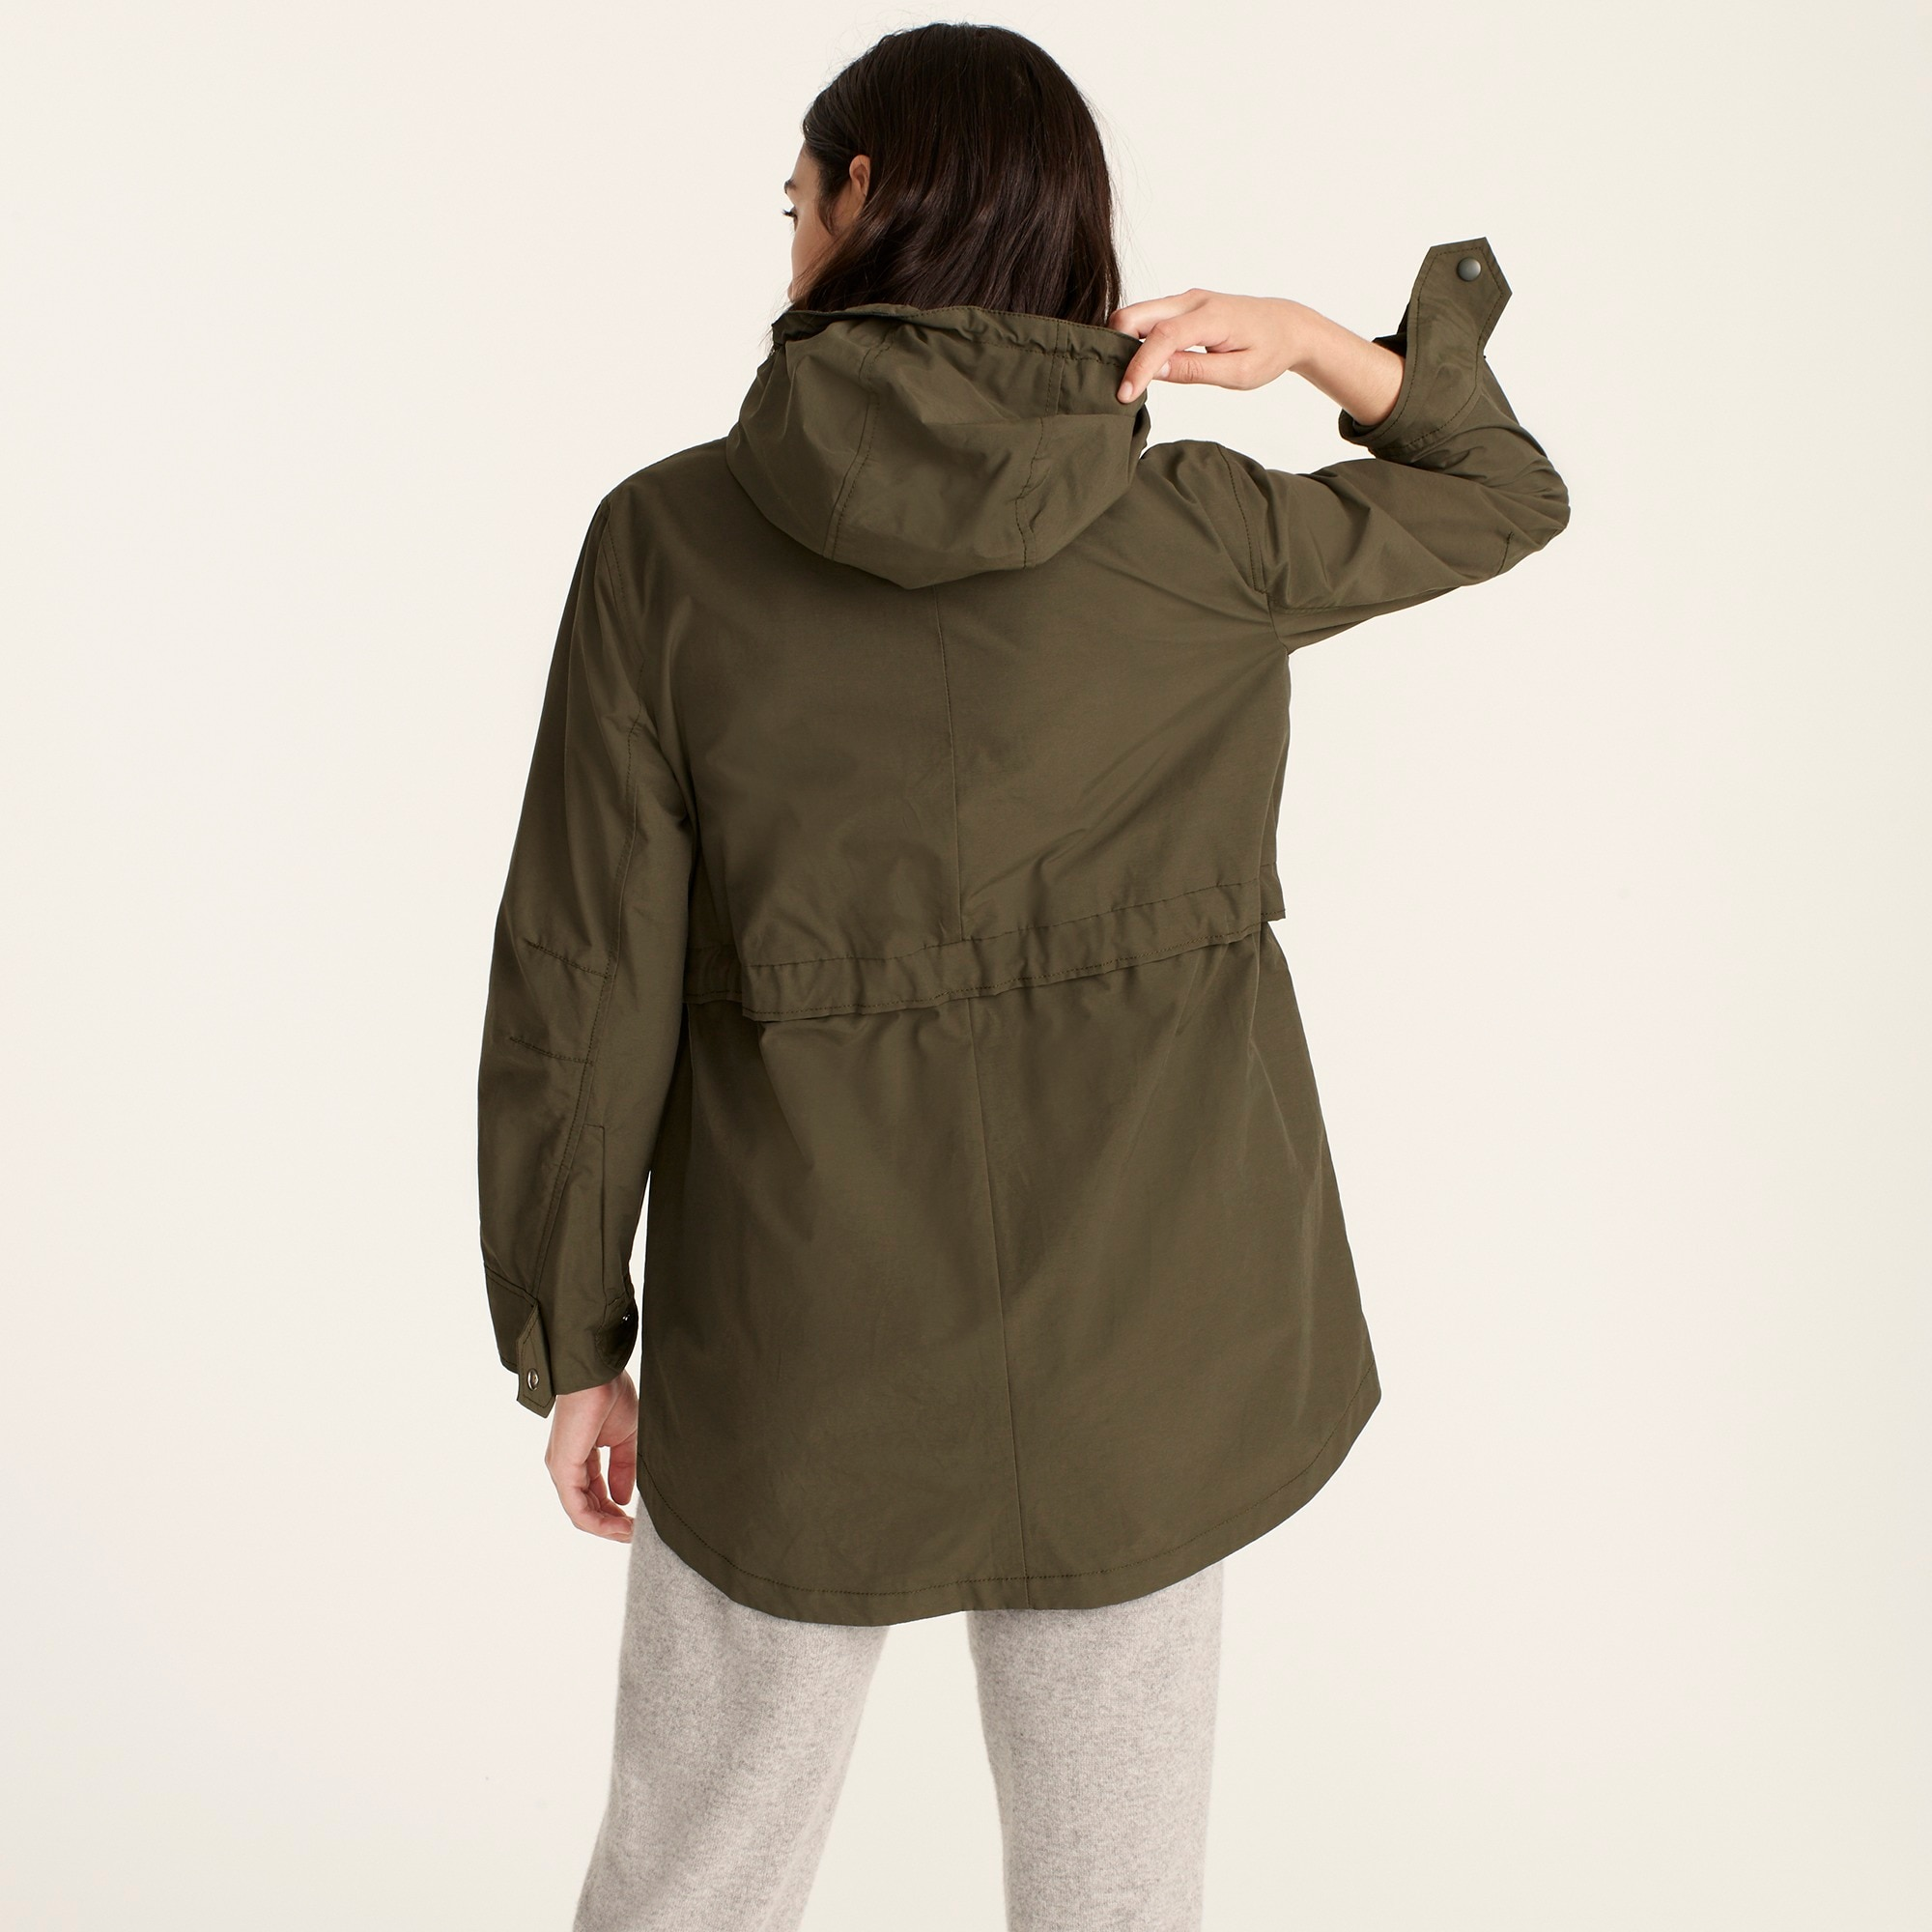 Image 4 for Petite perfect rain jacket